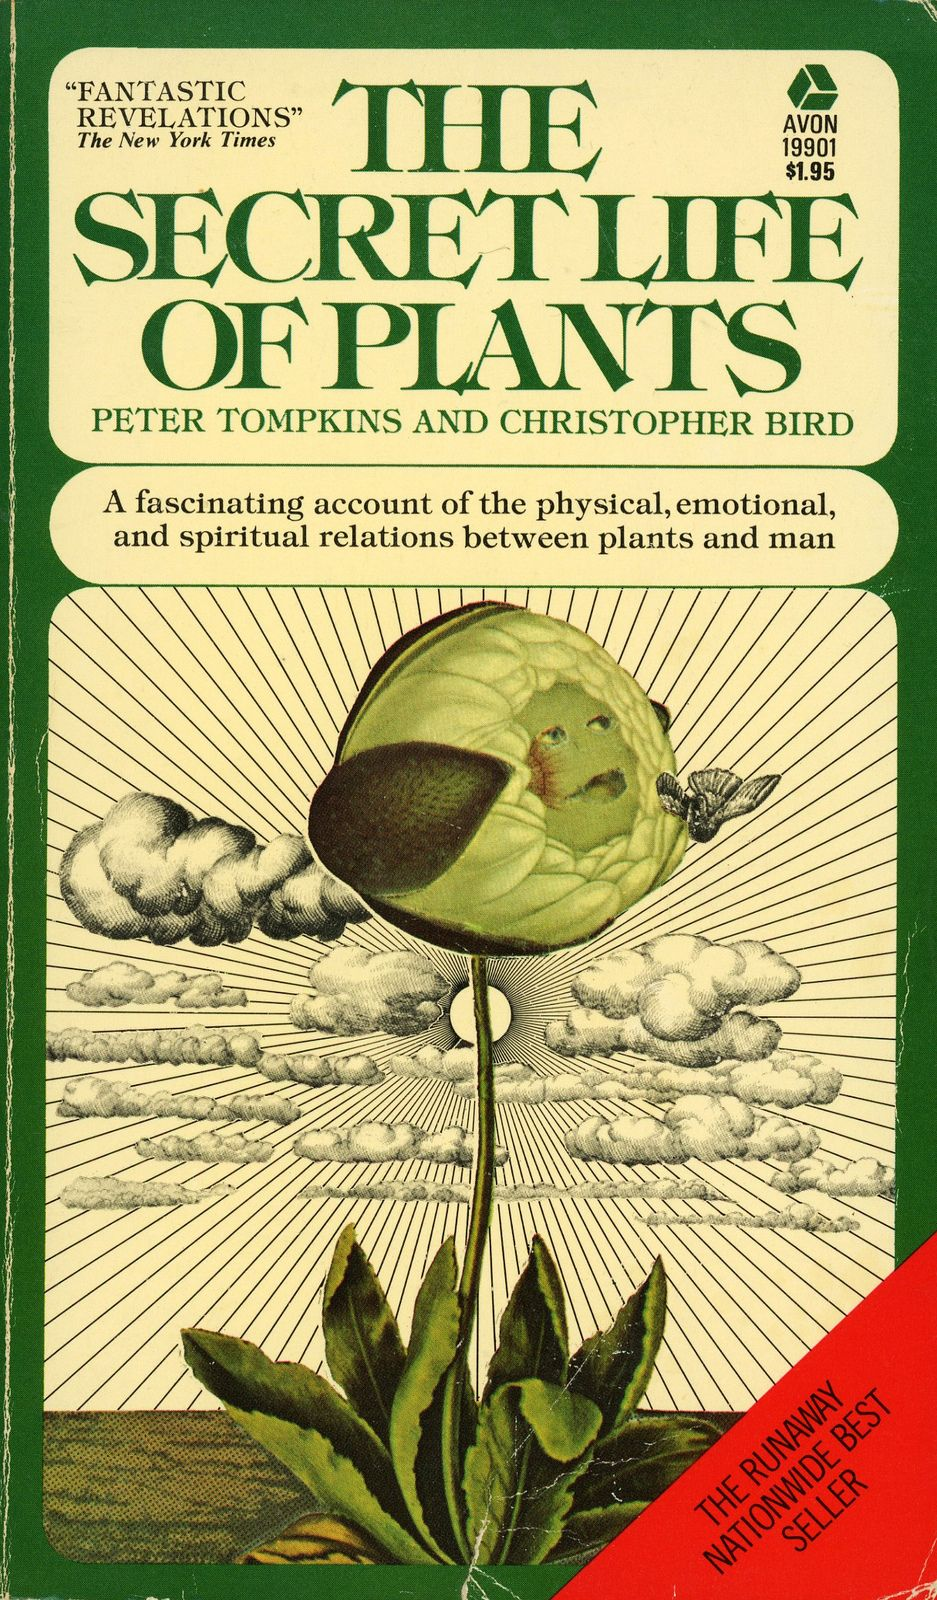 Avon Books 19901 Peter Tompkins And Christopher Bird The Secret Life Of Plants Secret Life Of Plants Avon Books Vintage Book Covers